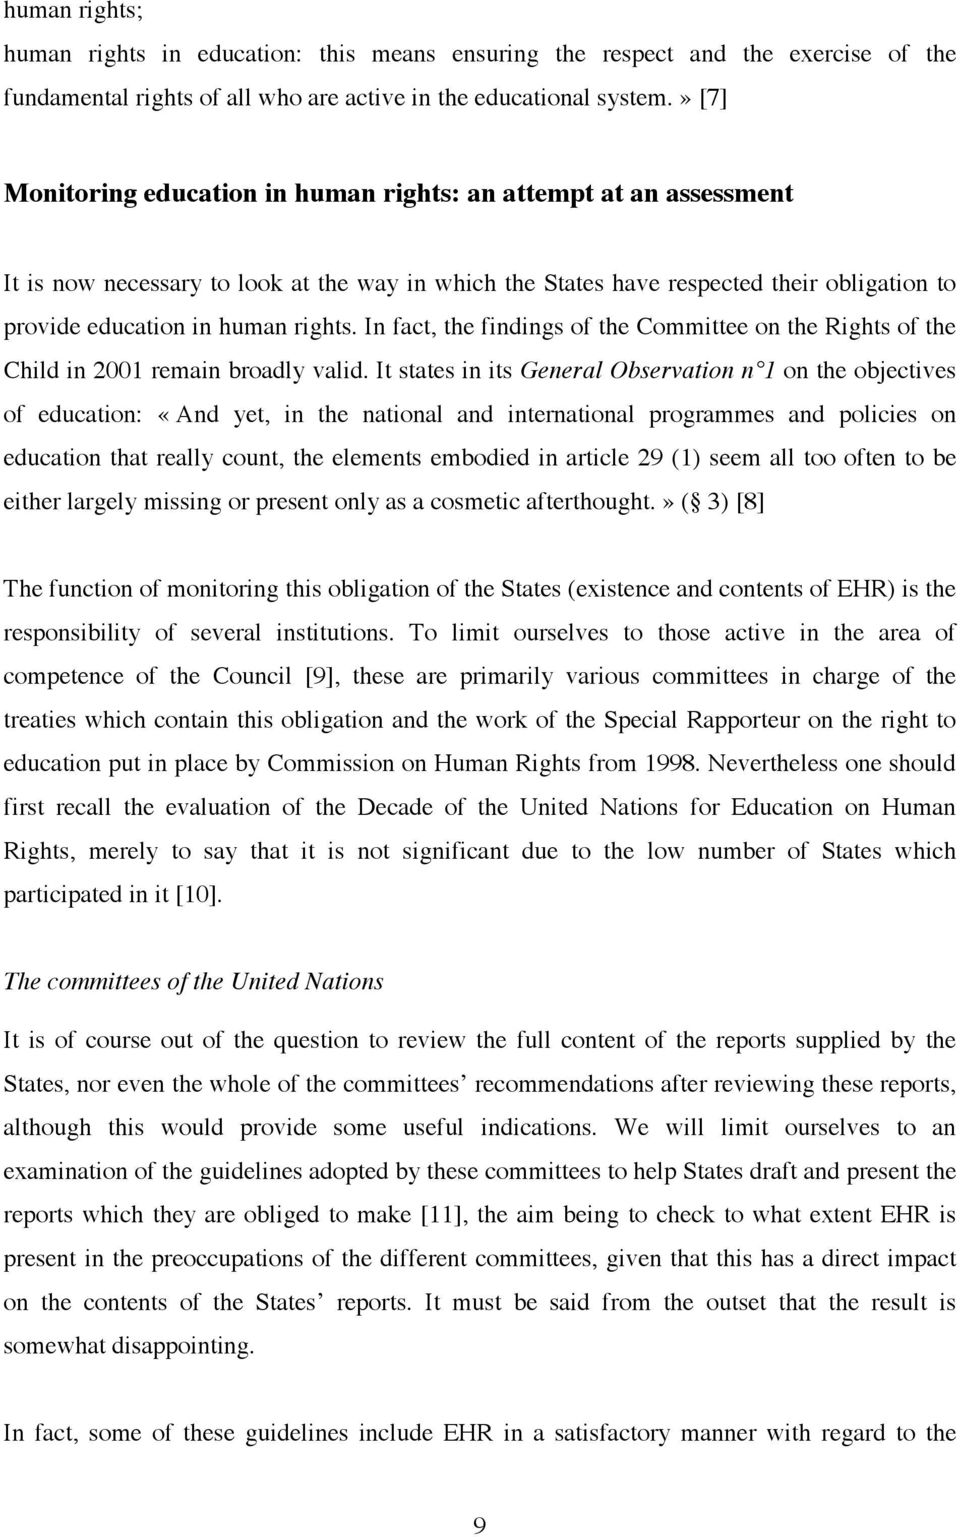 In fact, the findings of the Committee on the Rights of the Child in 2001 remain broadly valid.